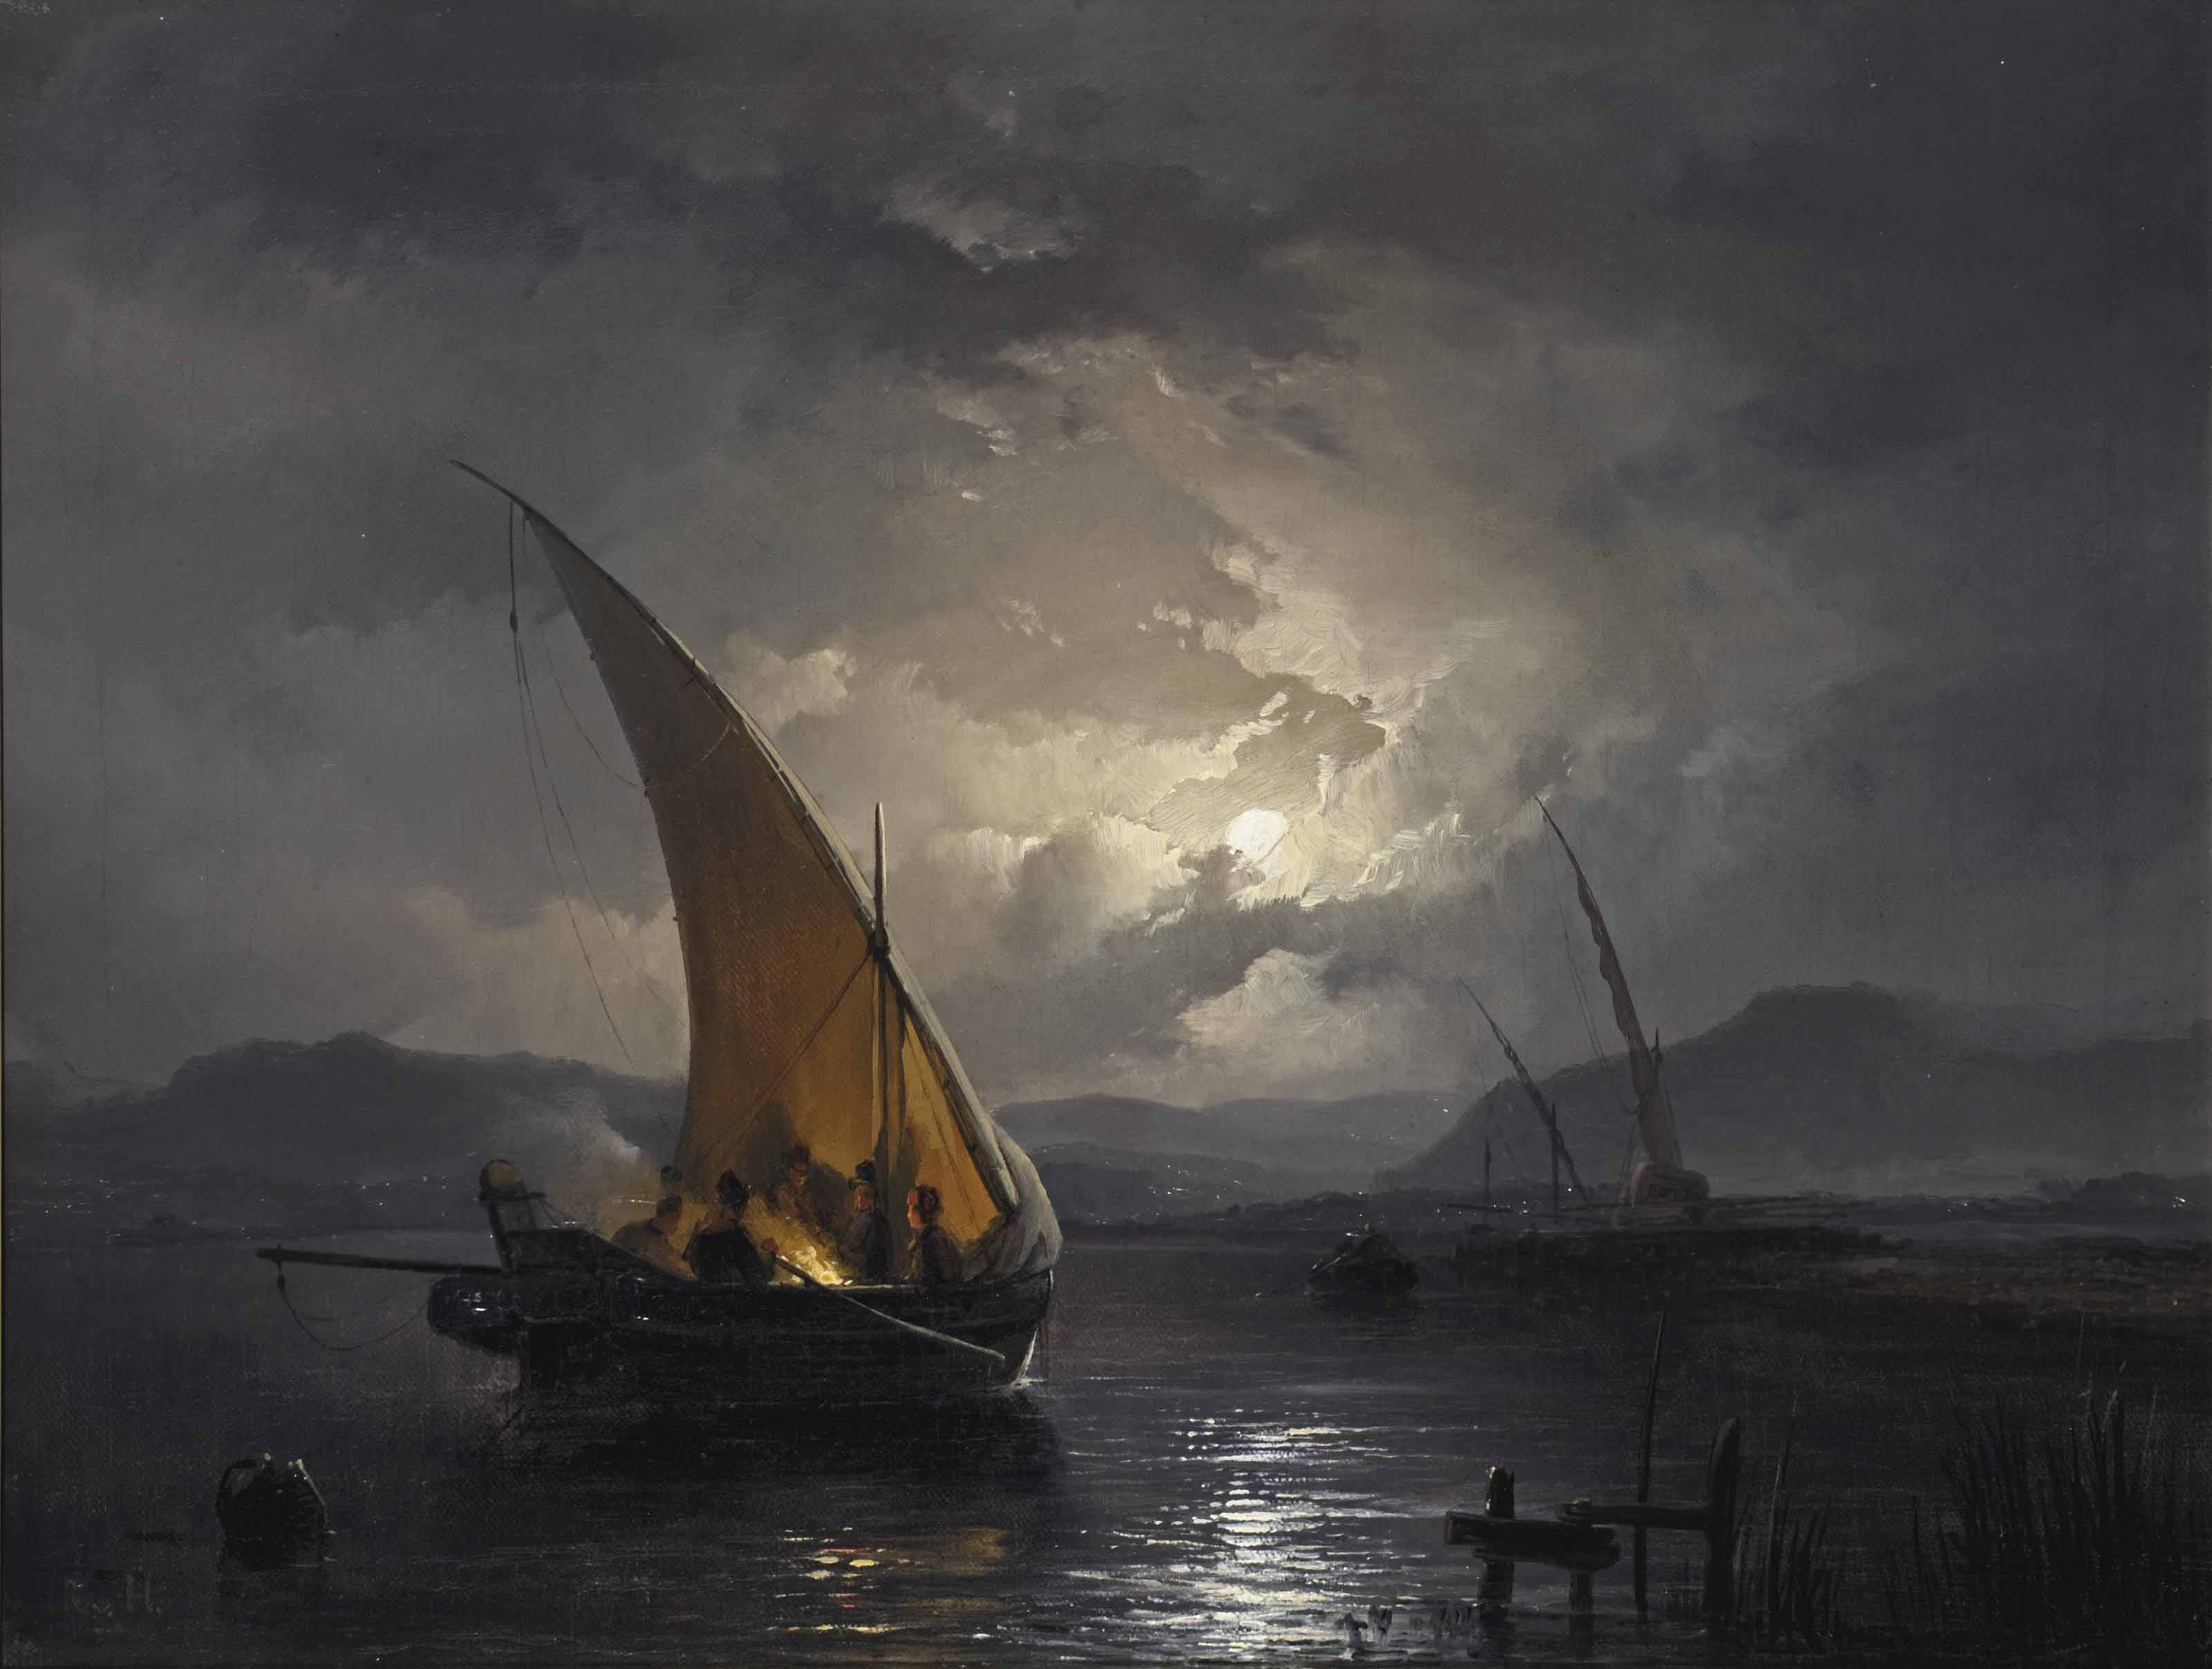 A night landscape with a sailboat where a fire is being lit